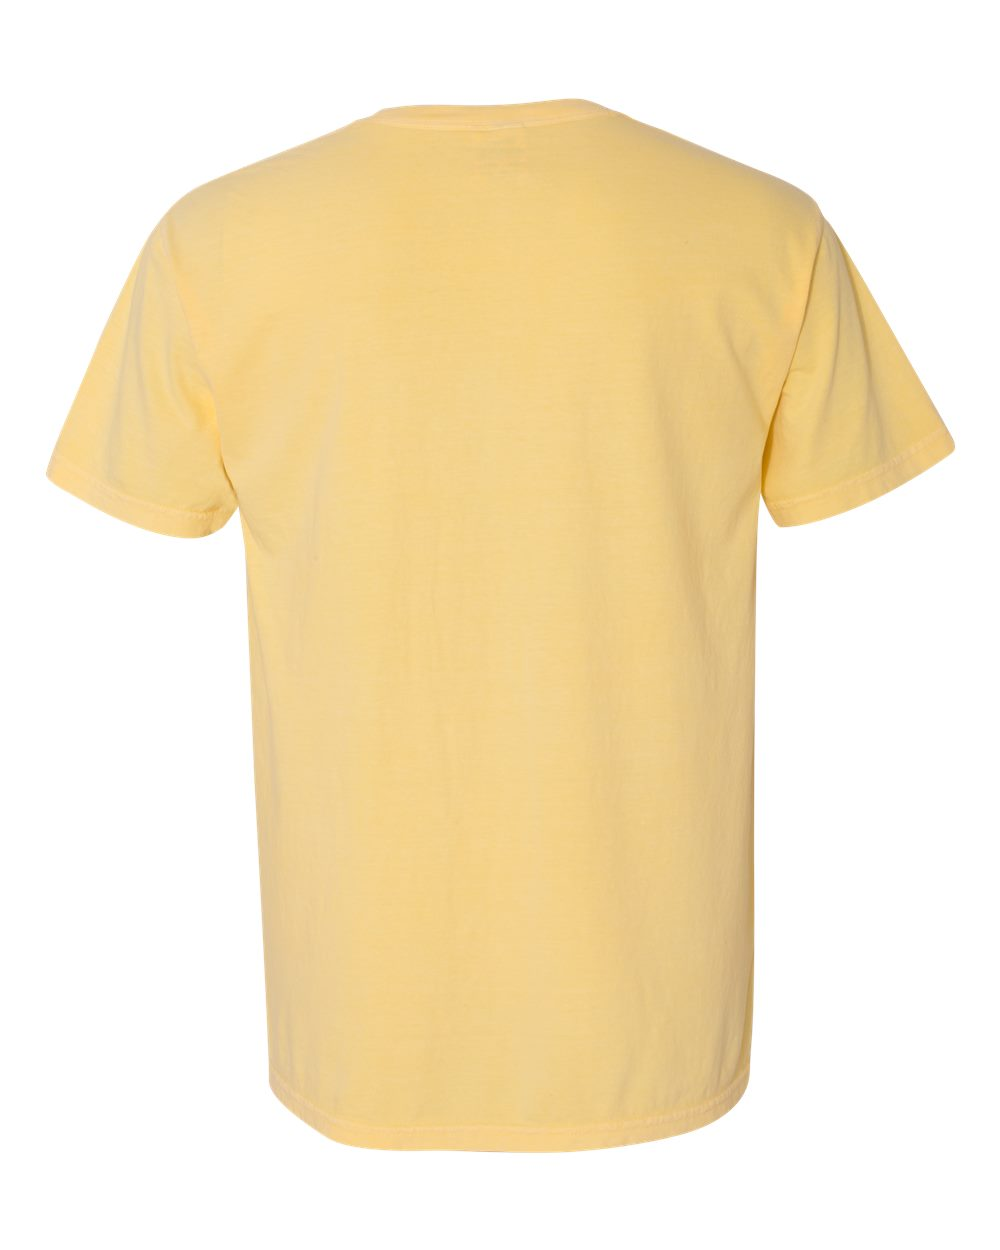 Comfort-Colors-Men-039-s-6-1-oz-Garment-Dyed-Pocket-T-Shirt-6030CC-S-3XL thumbnail 19